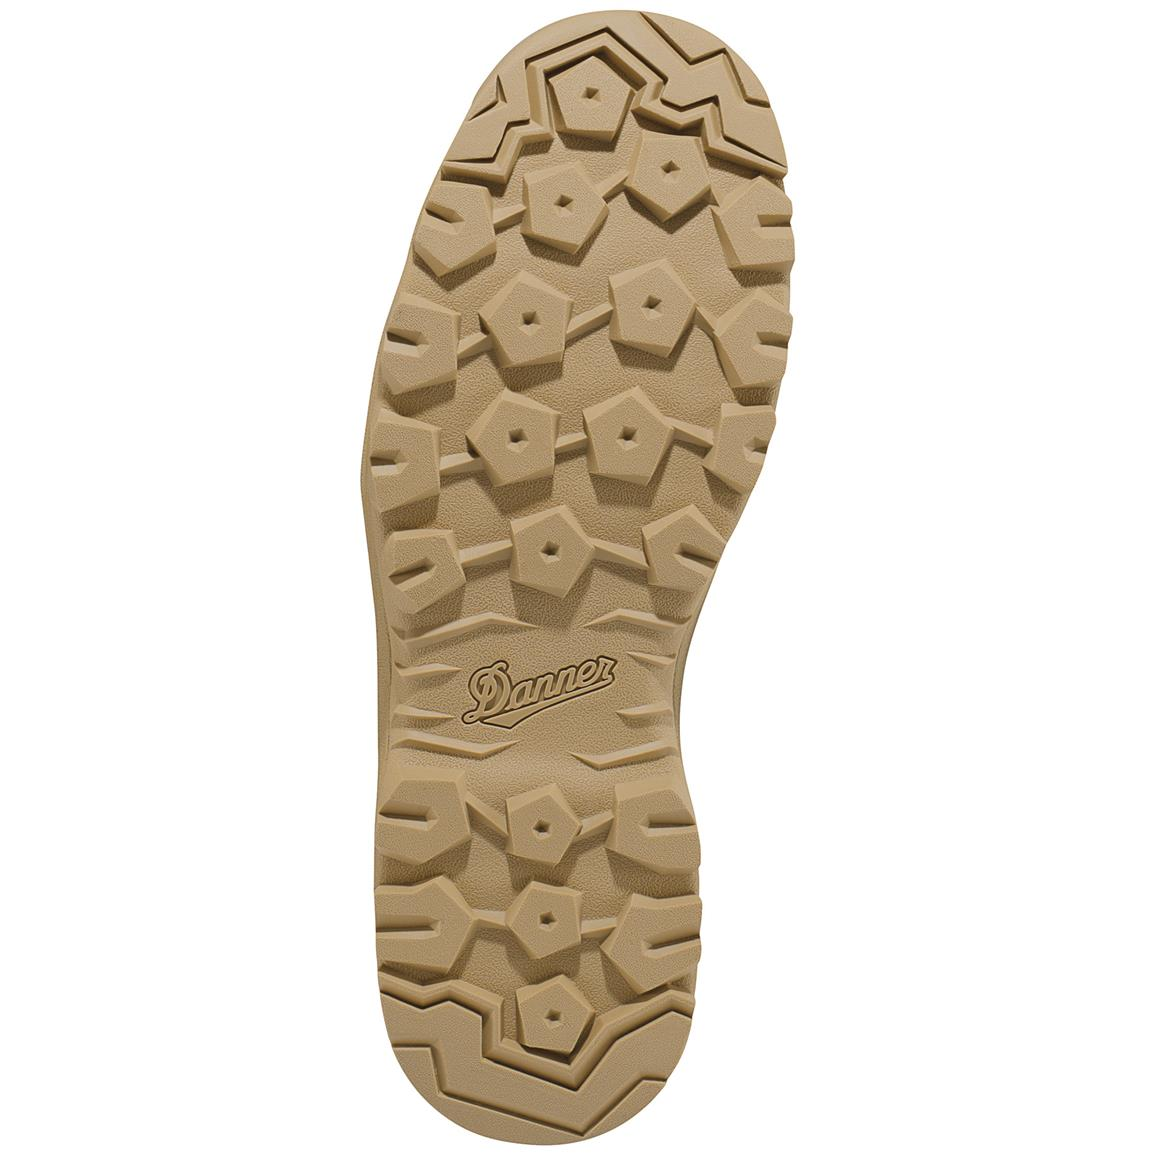 Danner® Tanicus outsole features pentagonal lugs for variety of terrain